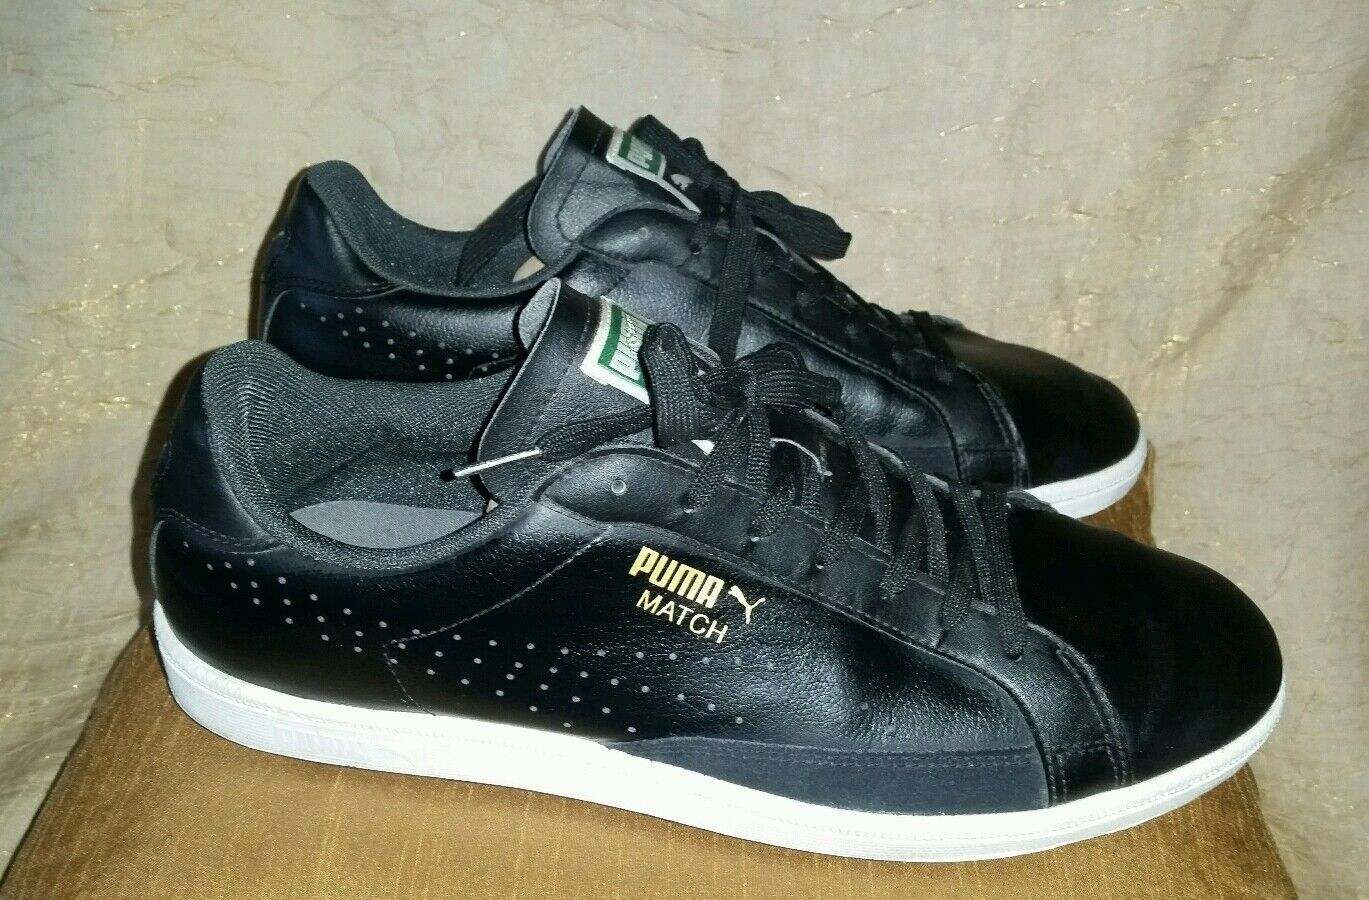 Puma Match Negro leather zapatos Blanco trim firma zapatillas zapatos leather tenis casual salvaje 46 12 6a96b9